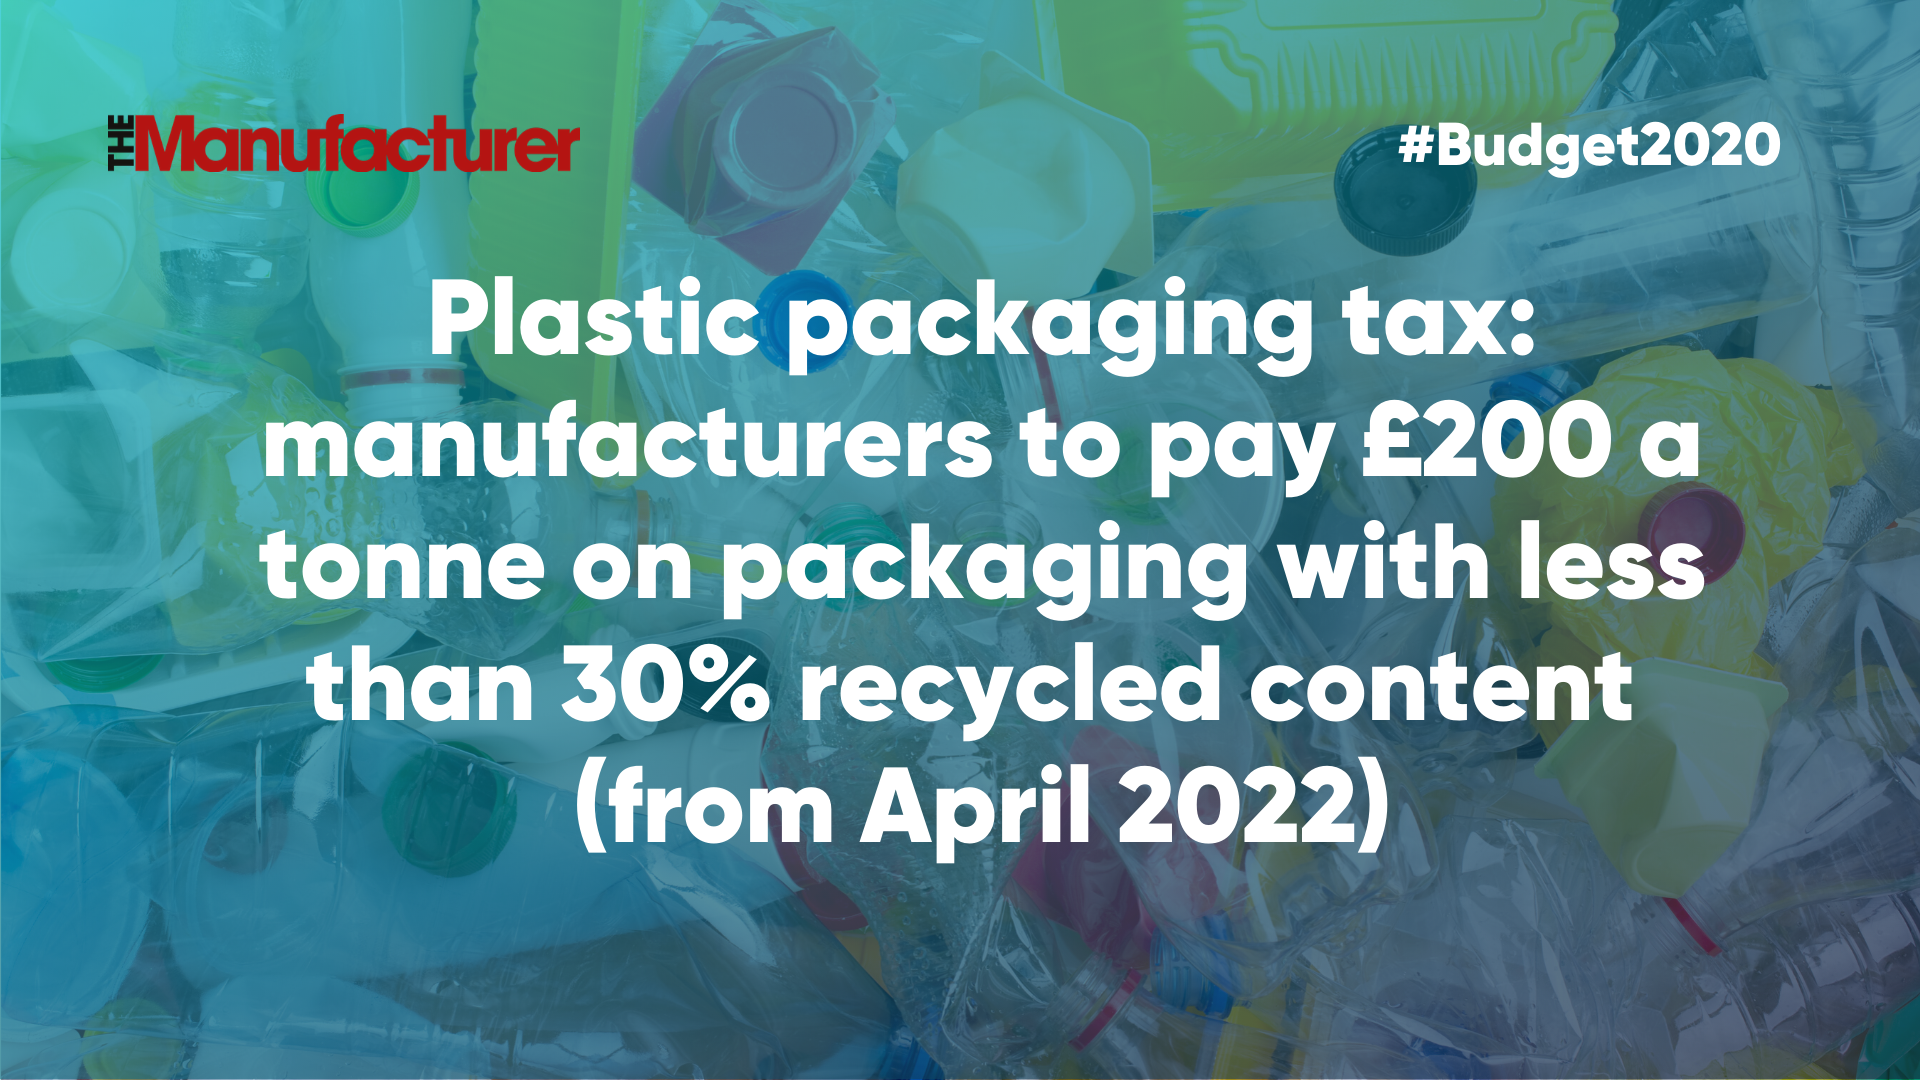 Budget 2020 - Plastic Packaging Tax